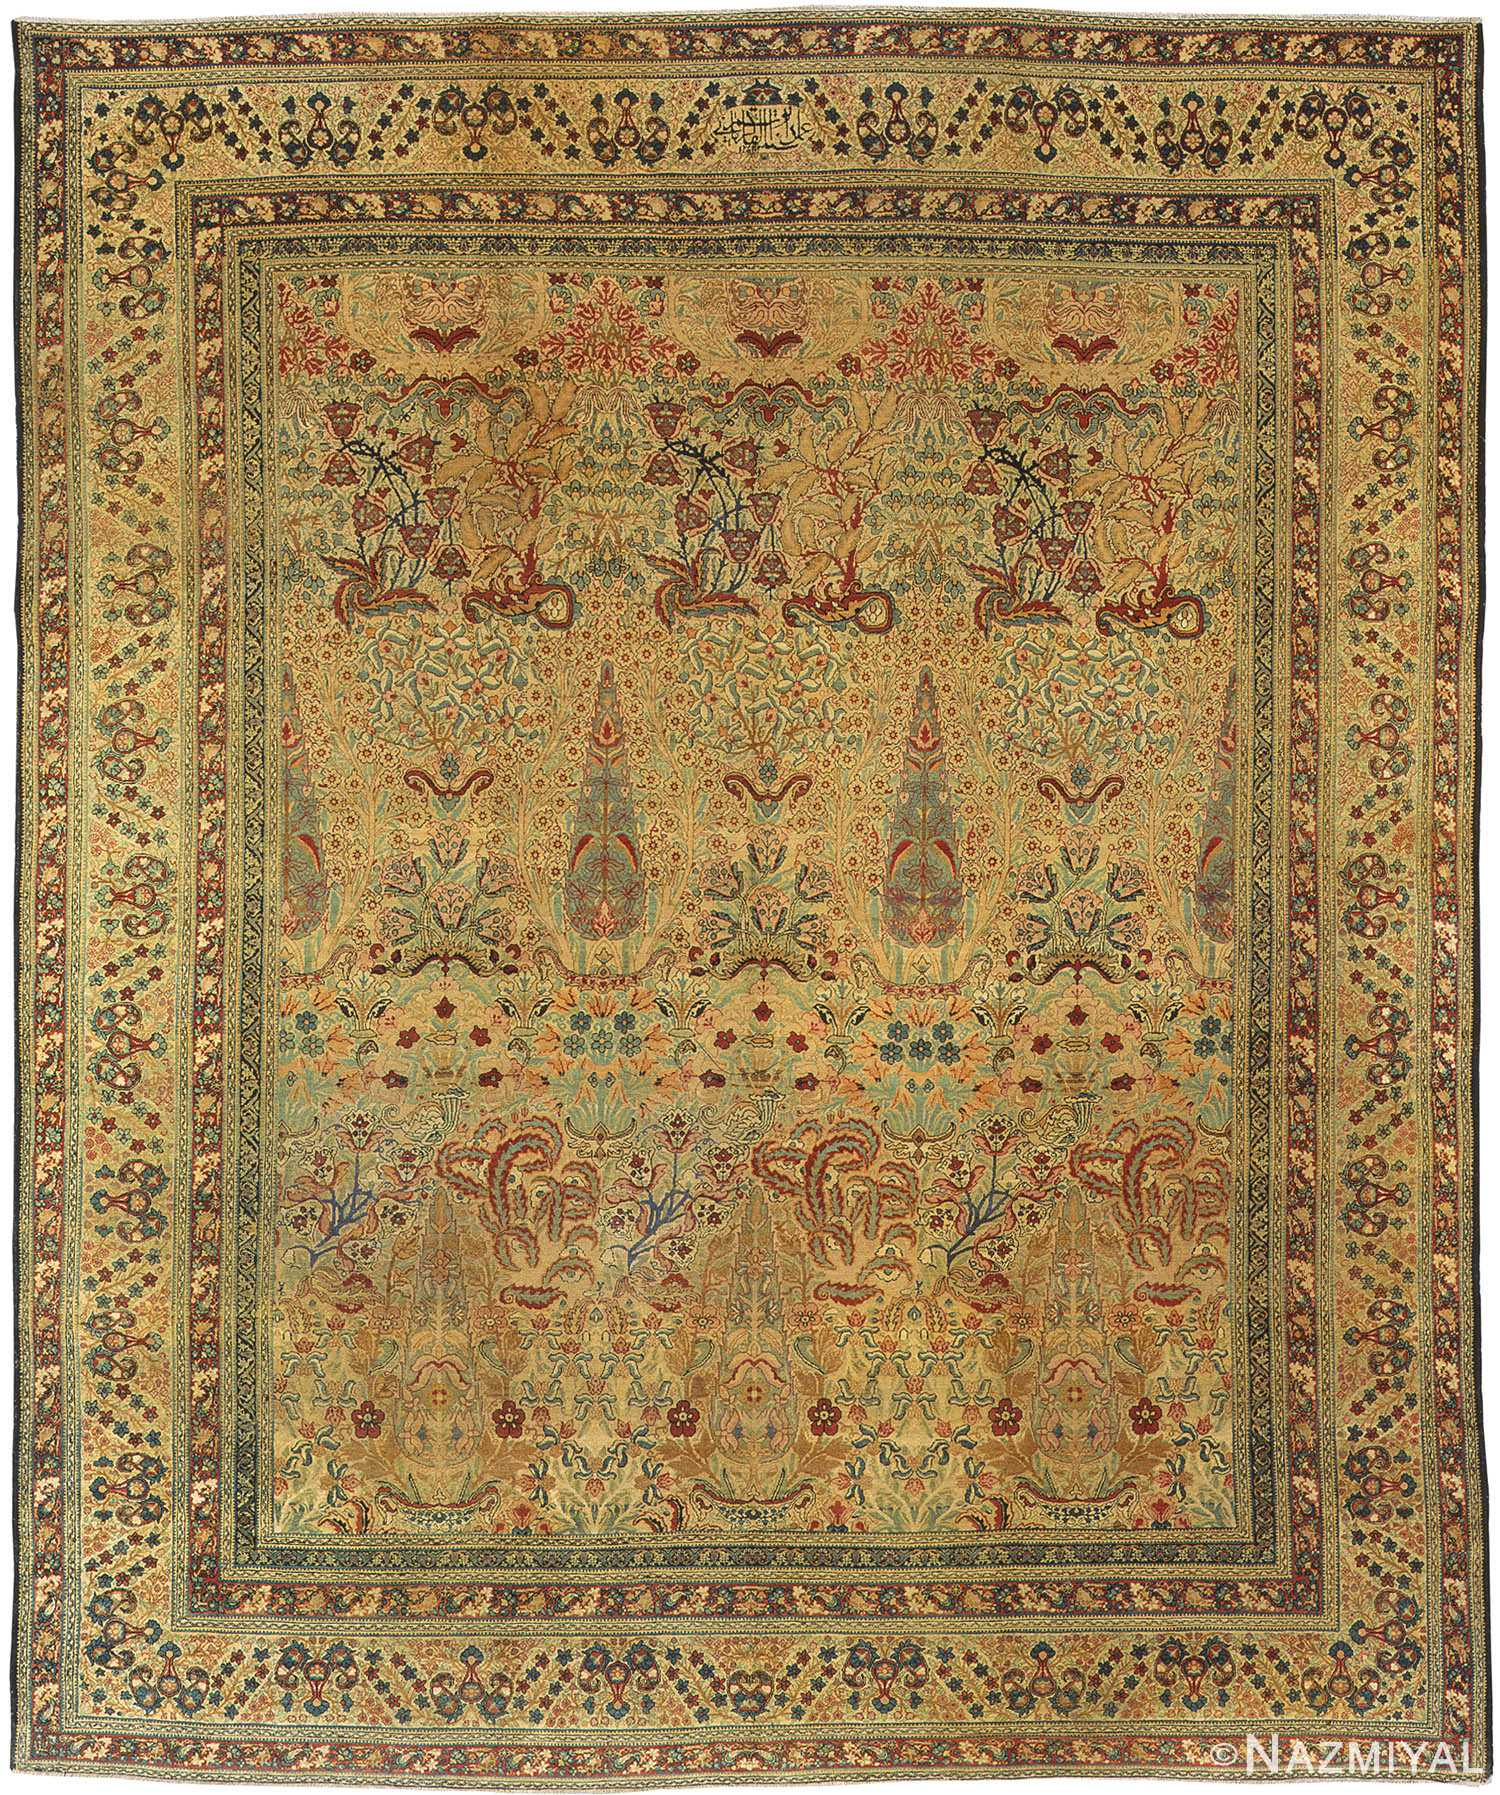 rugs antique - rugs ideas